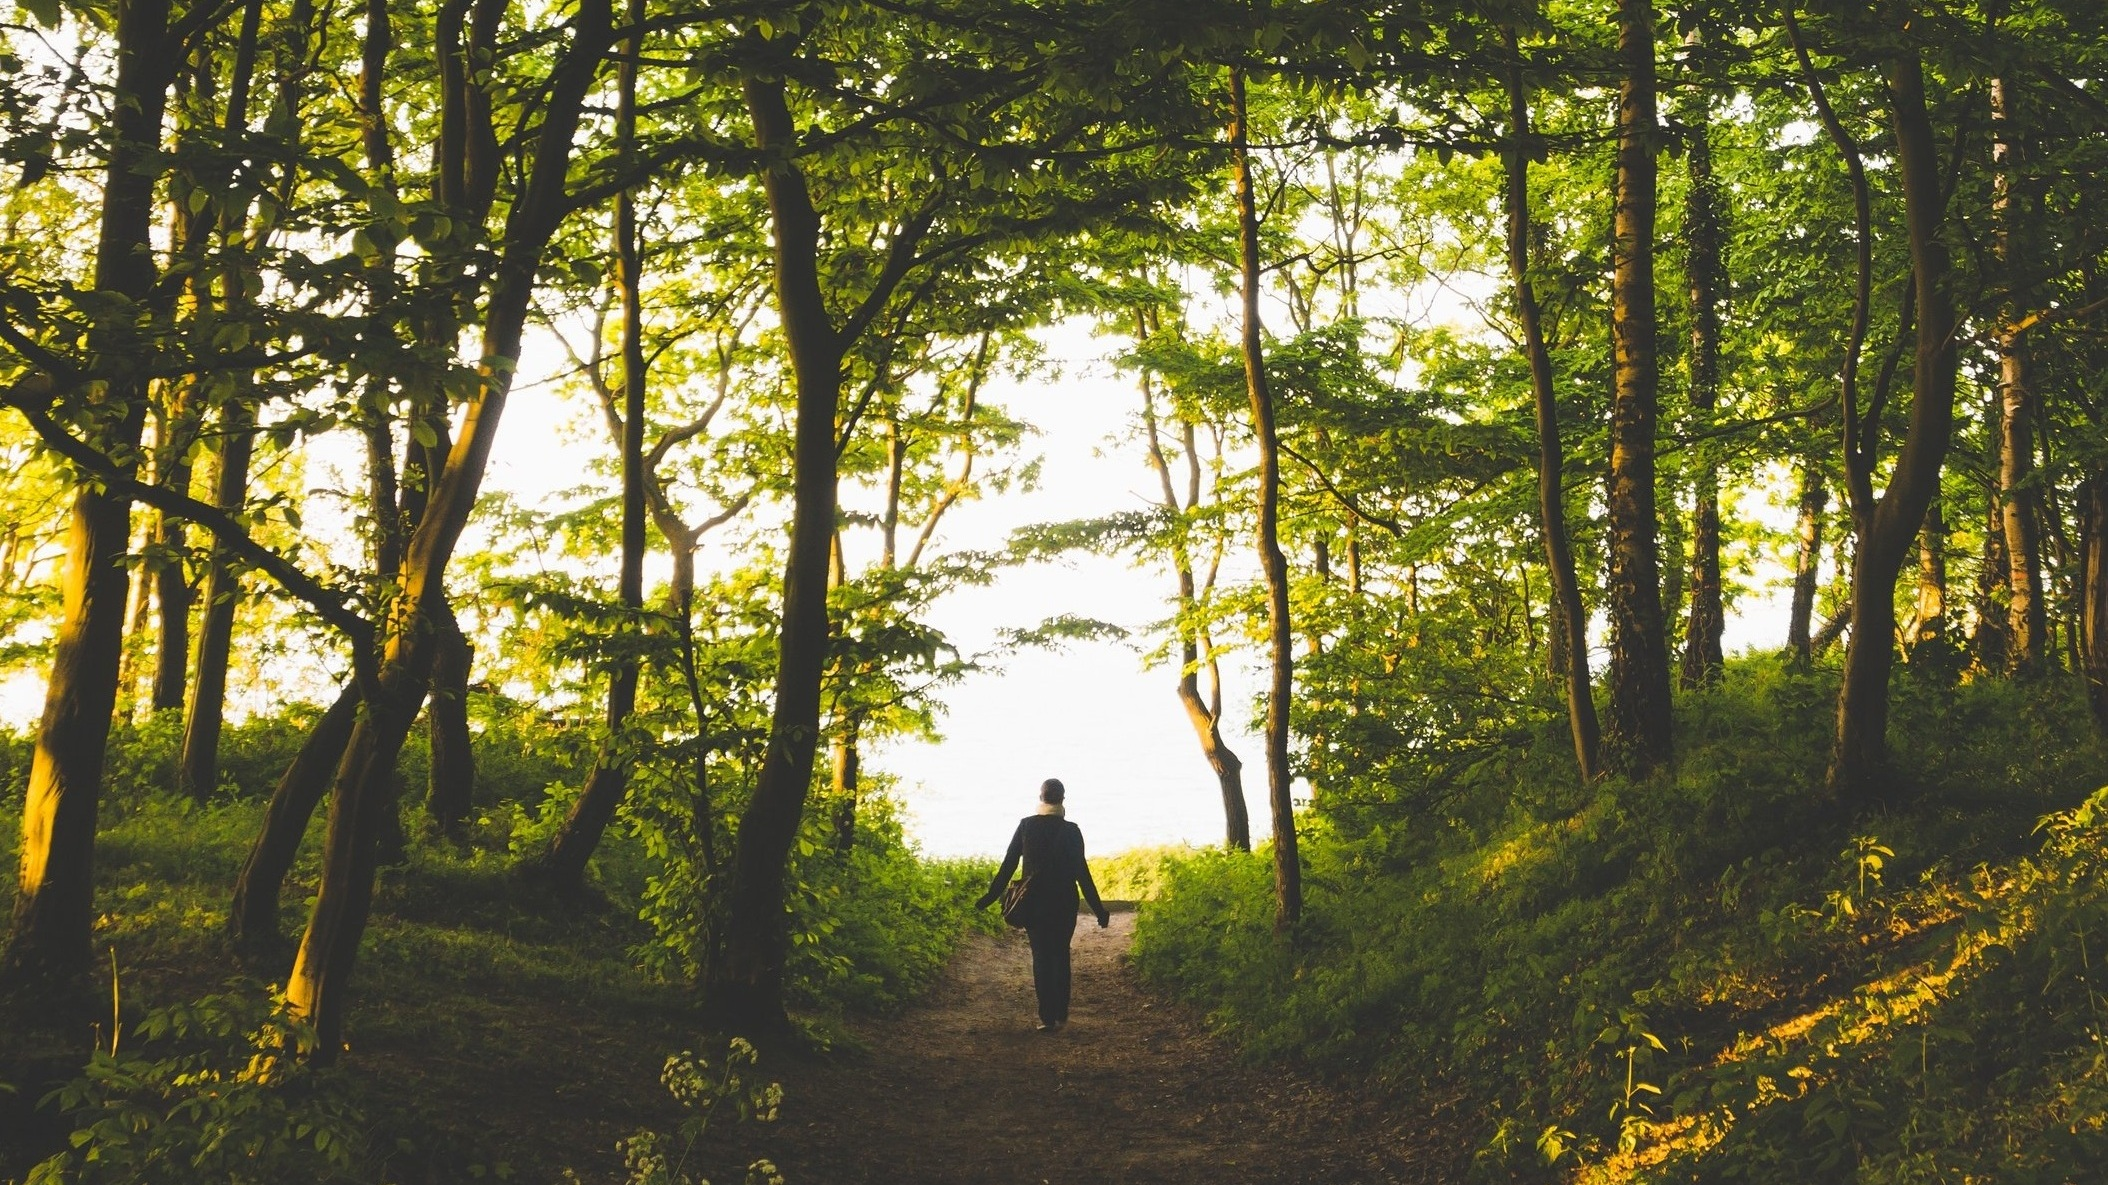 Walking the Path of Purpose Apprenticeship - Are you ready to go deep and discover your unique, soulful, intelligent, and meaningful place in the world? Discover your Soul Path through the wisdom of the Four Directions.In this 5 month in depth immersion program you will learn healing techniques that combine earth based wisdom with modern neuroscience and methodology. You will learn to listen to your internal compass in order to guide you on the path that is right for you.